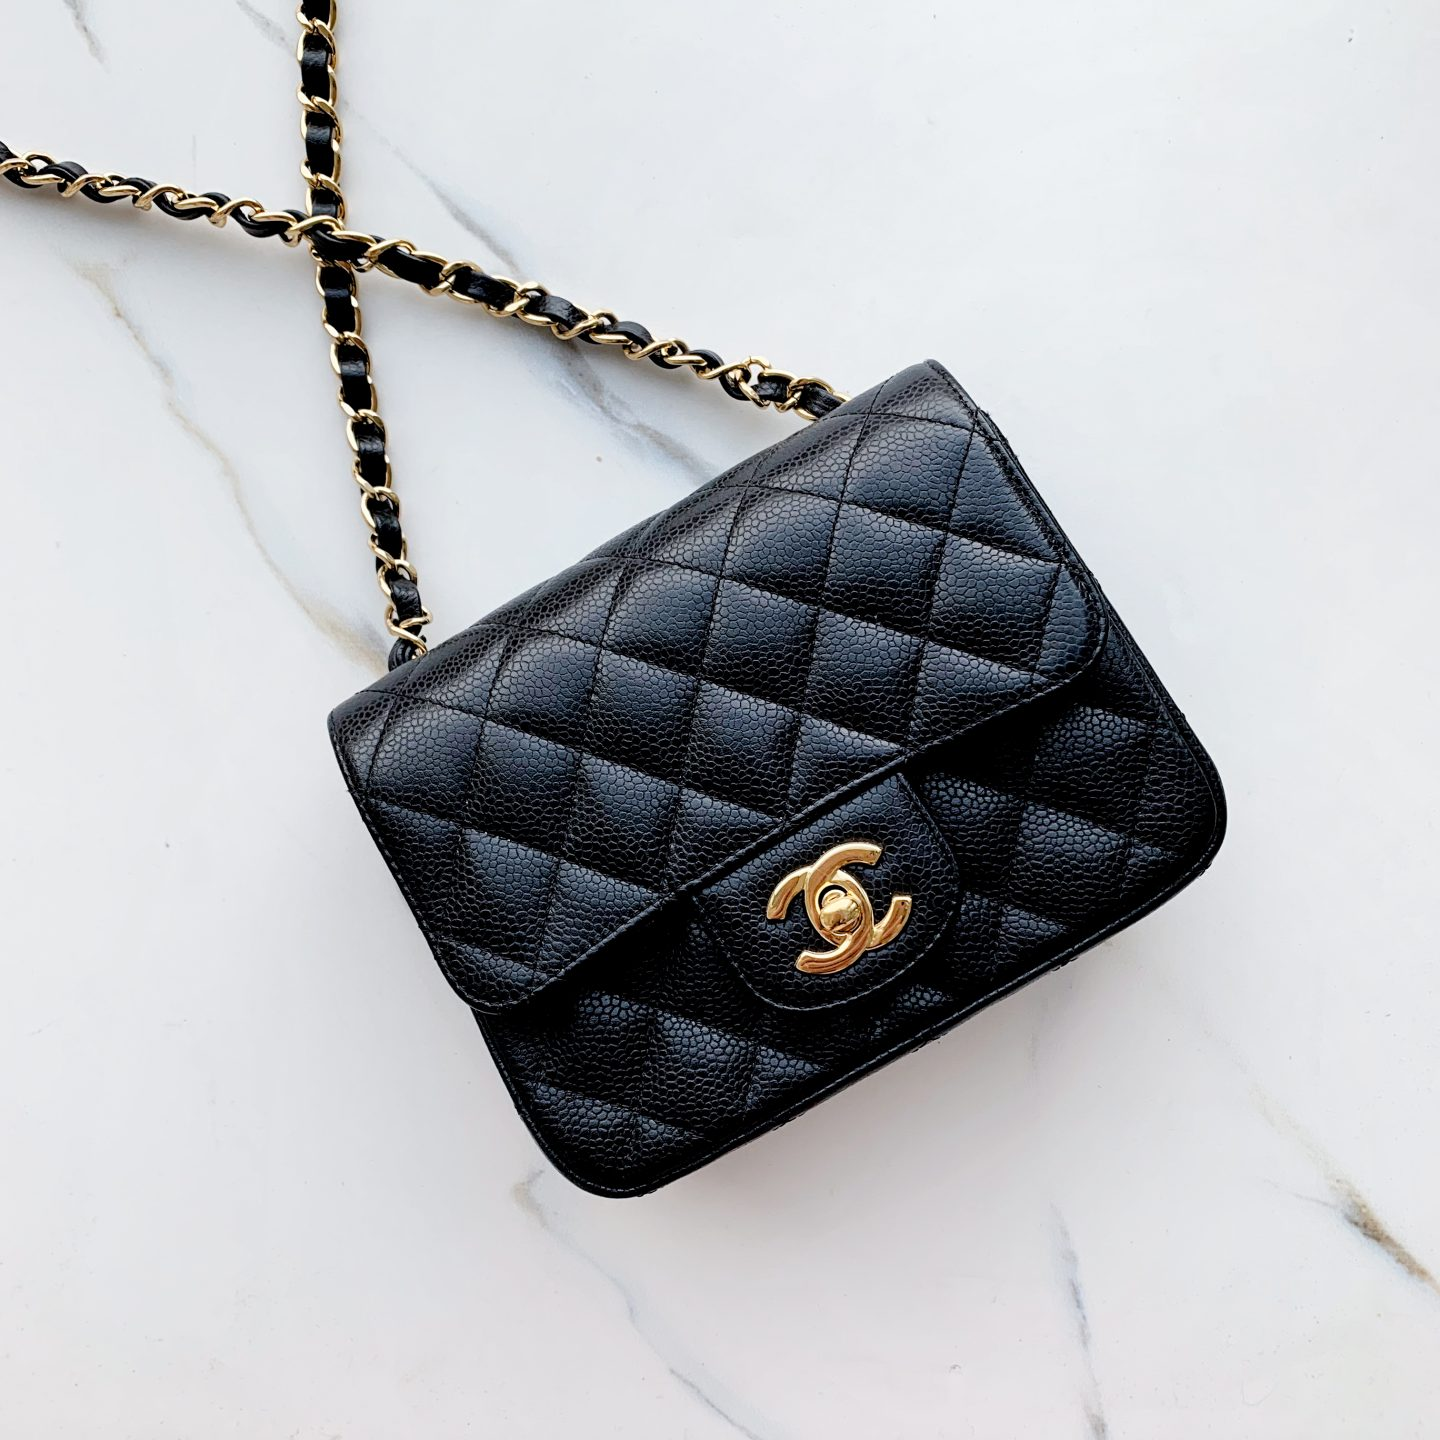 386055a94b24 ... on your first Chanel bag. Chanel offer many different varieties however  the two most popular and frequently used leathers are caviar and lambskin.